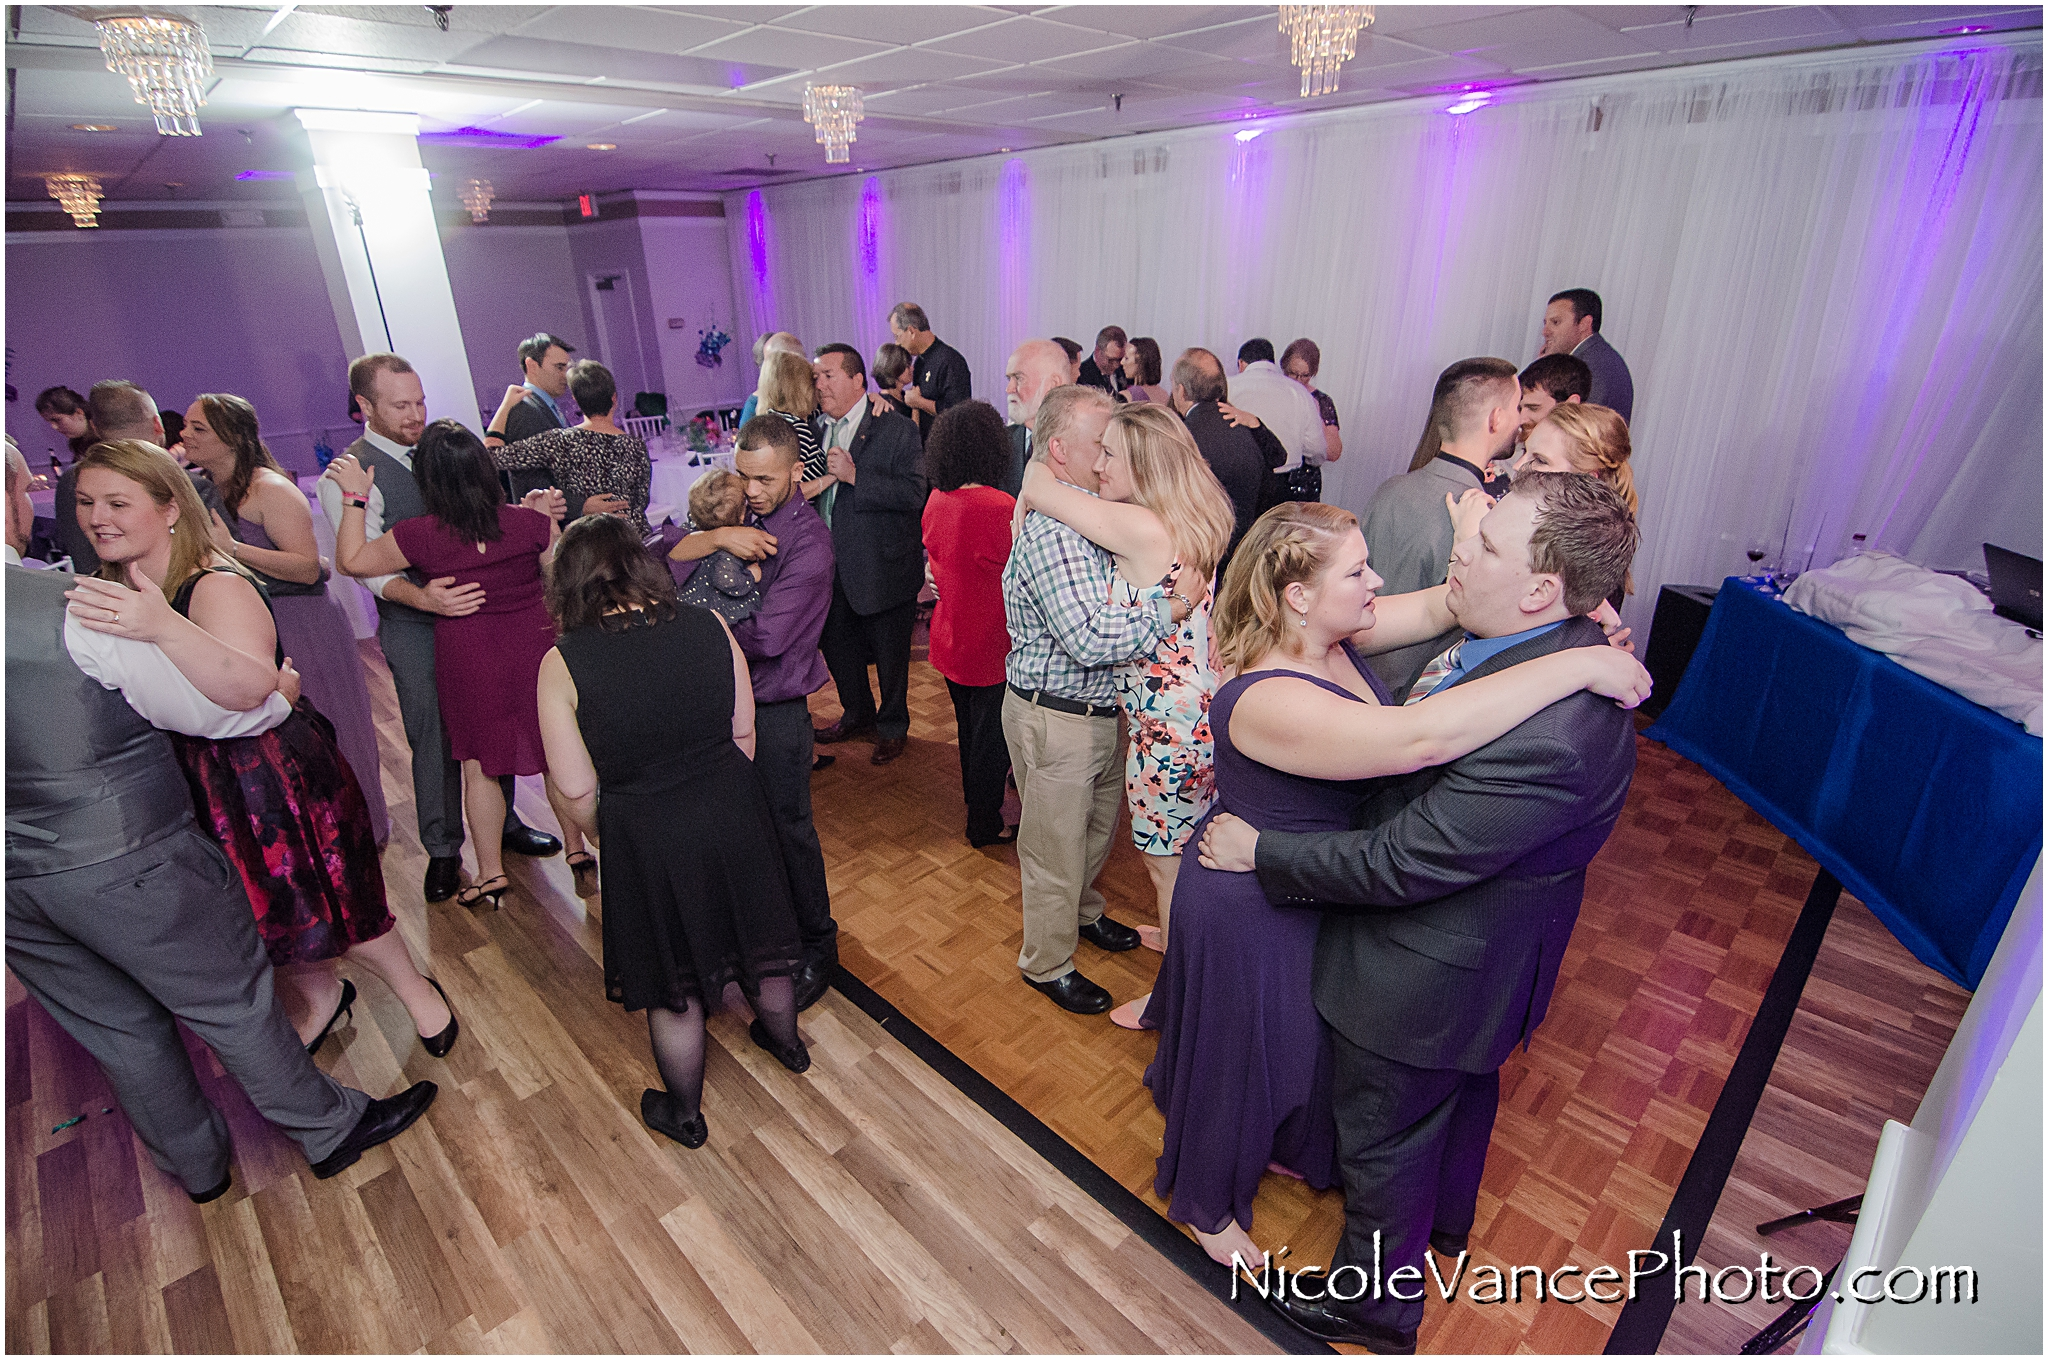 The guests enjoy music provided by DJ Patrick of Nard's DJ services.